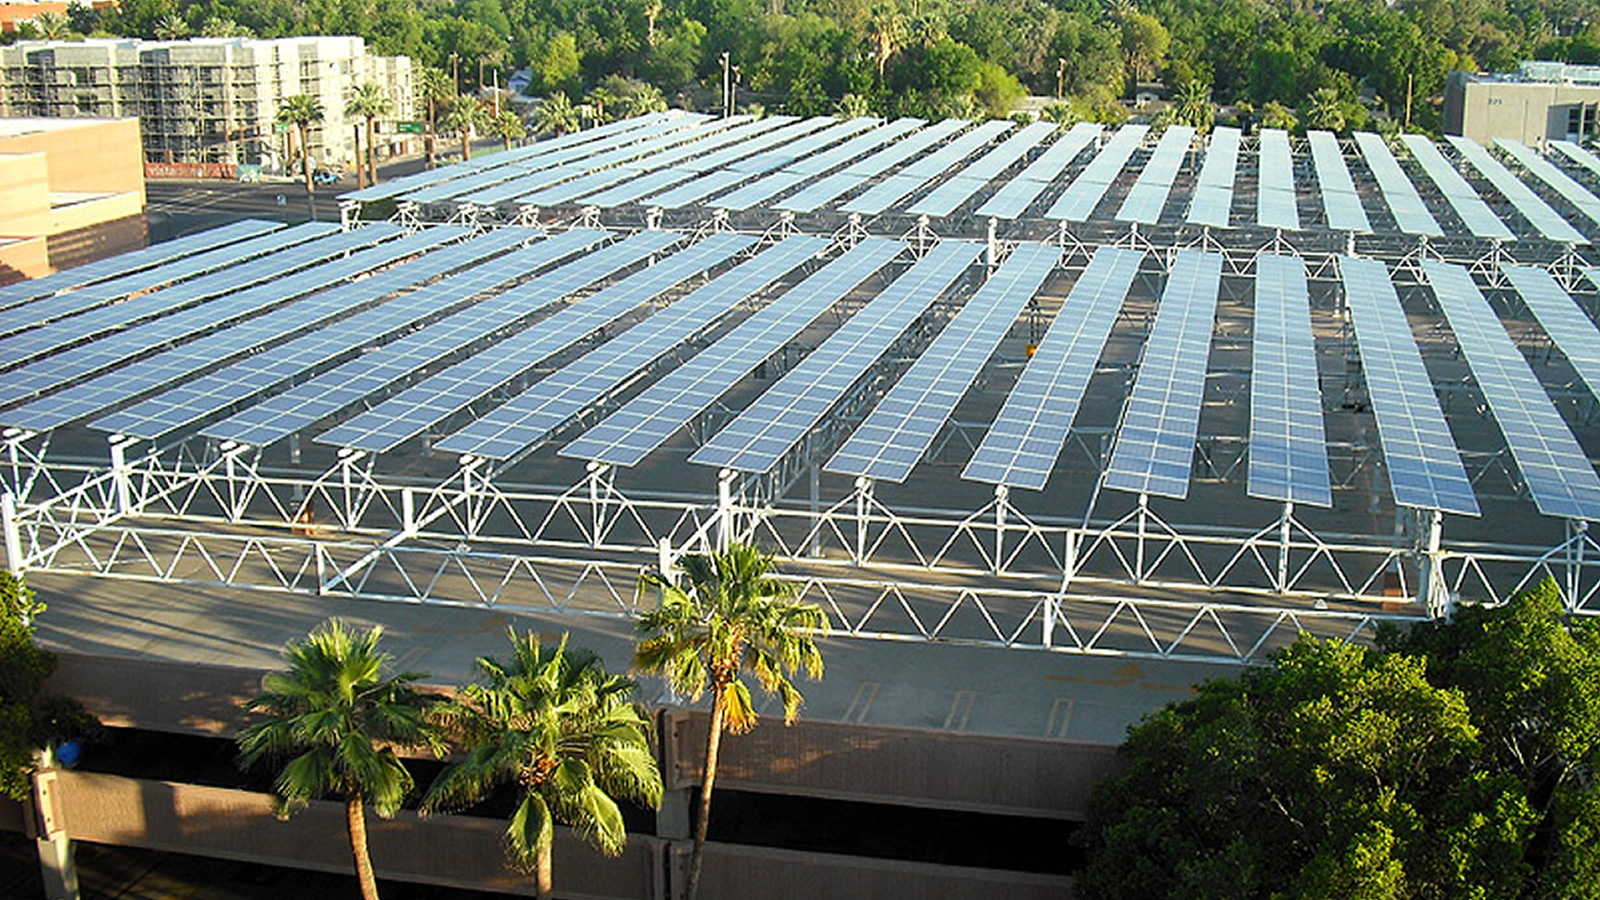 <h4>Shining Cities</h4><h5>Our Shining Cities project is urging cities across the country, including here in Arizona, to think bigger, act smarter, and tap the sun for more of their power.</h5><em>aznaturalist cc BY-SA 3.0</em>